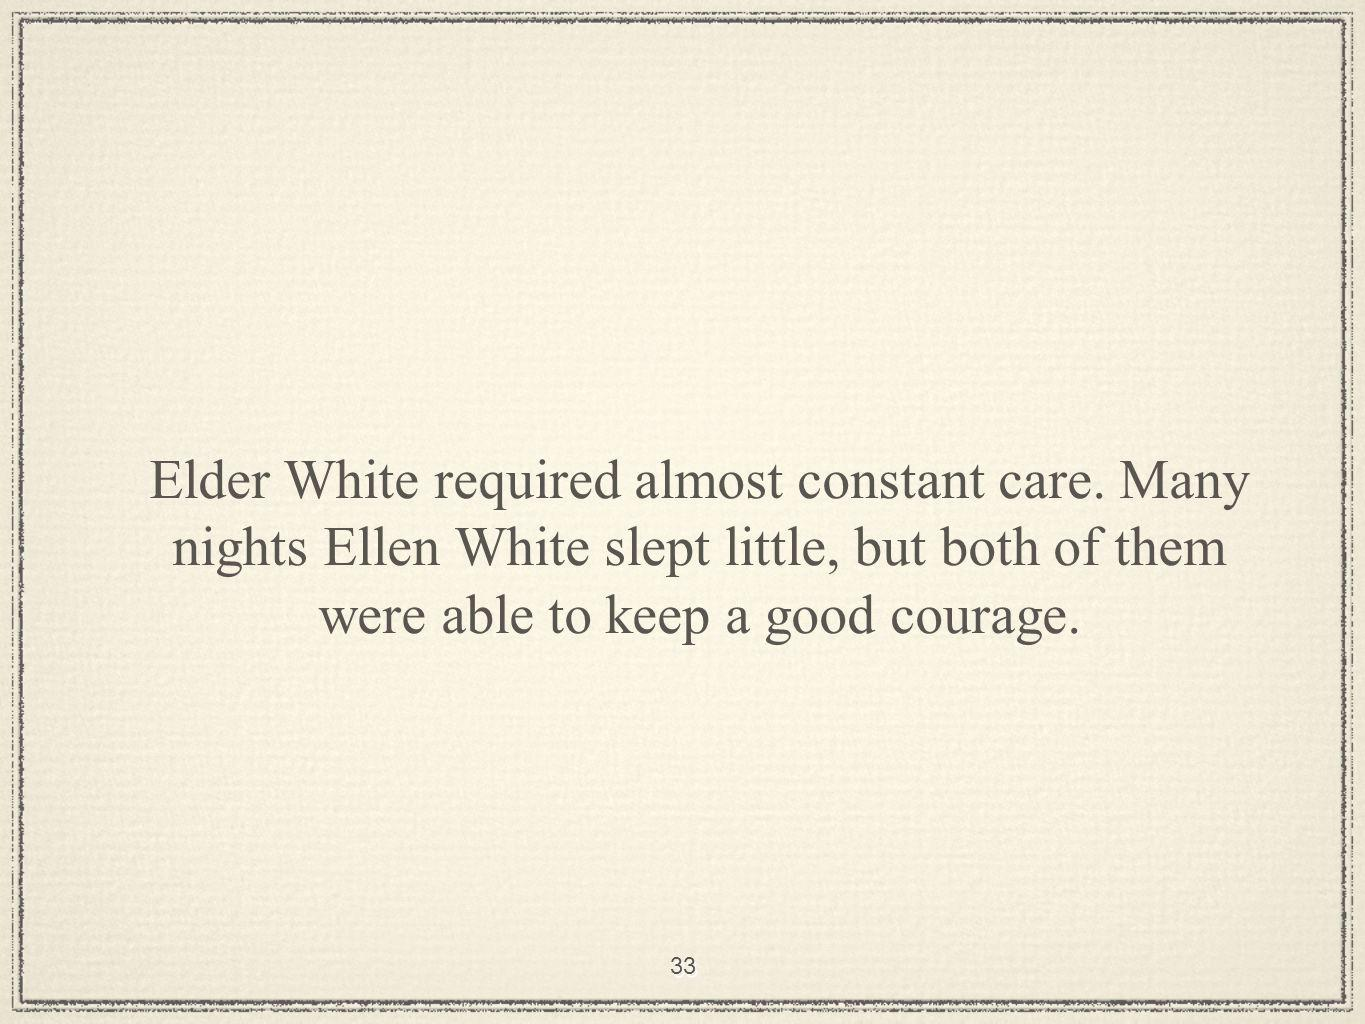 33 Elder White required almost constant care.